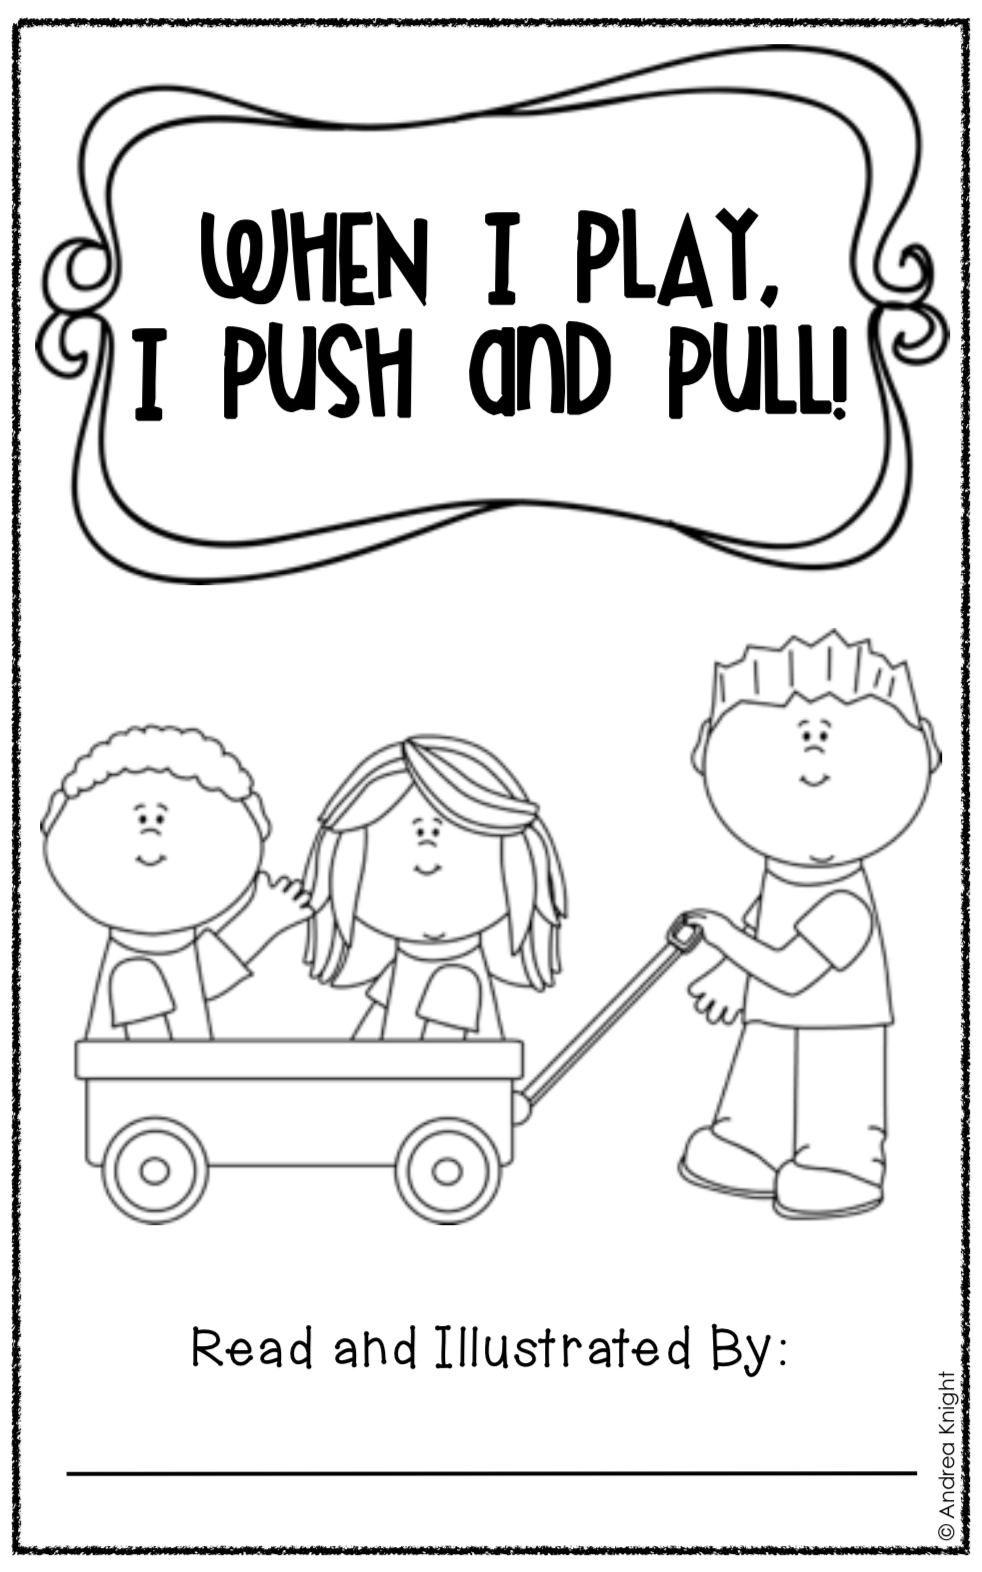 Push and Pull (A Book about Force and Motion for K-1